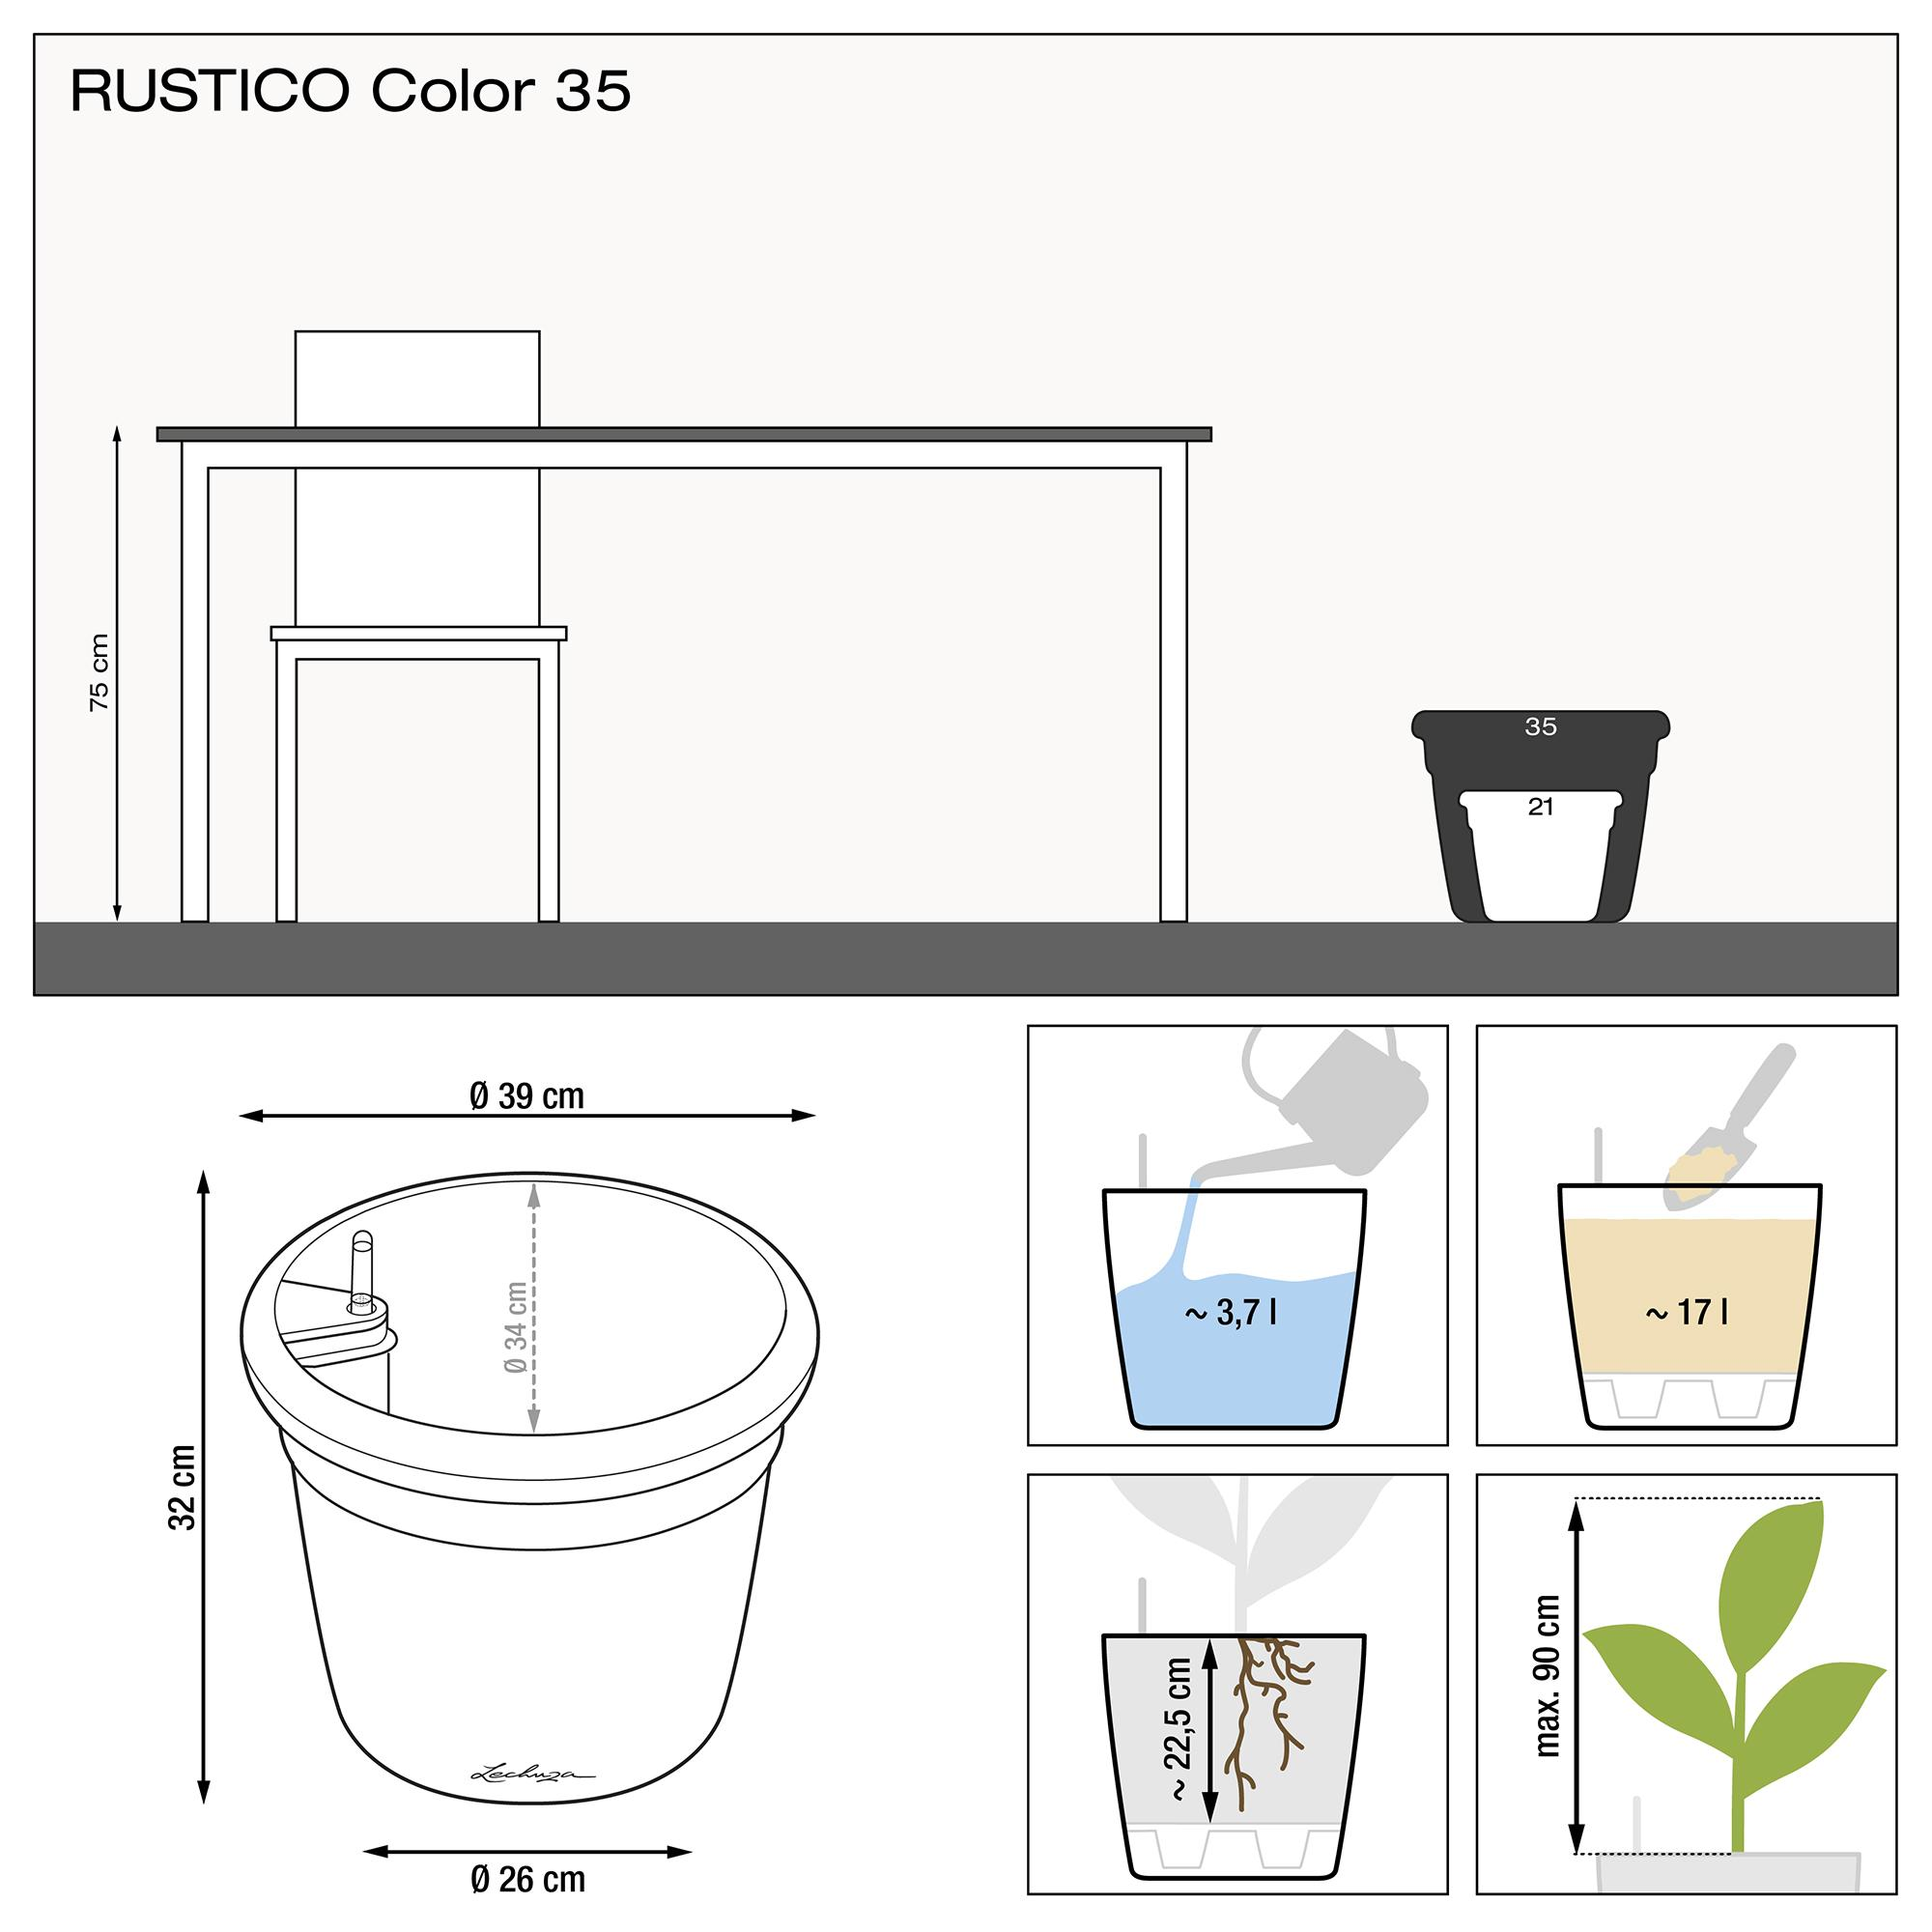 le_rustico-color35_product_addi_nz